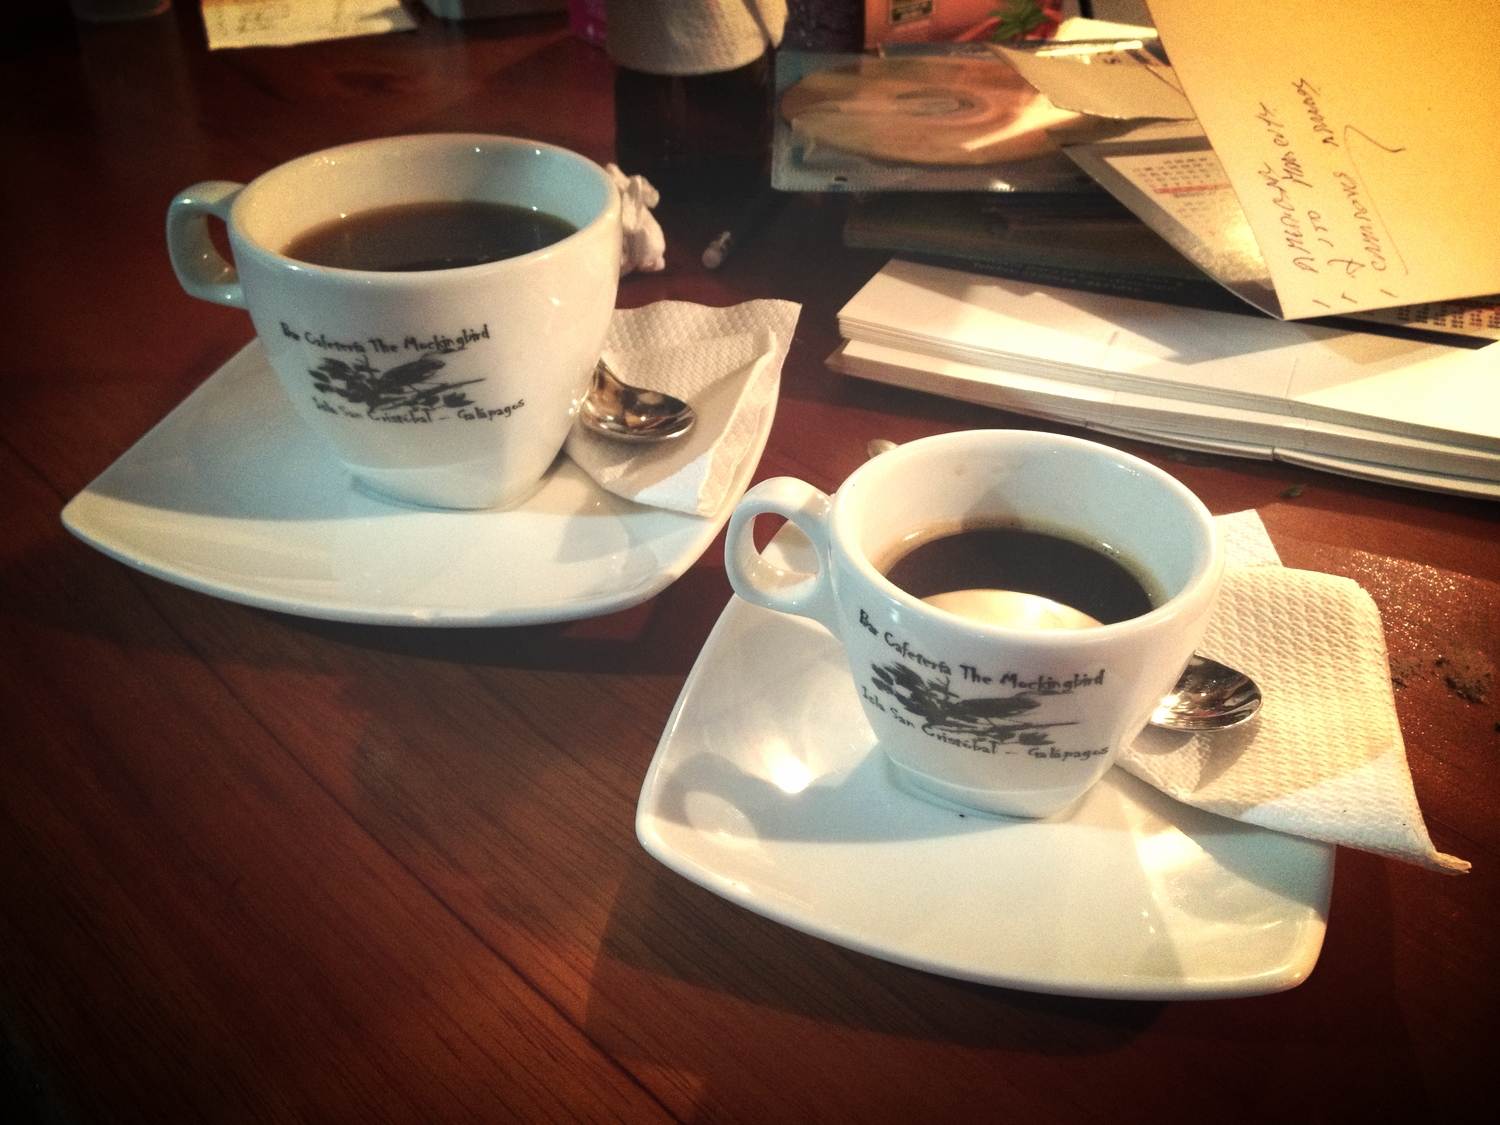 Coffee tasting at the Mockingbird